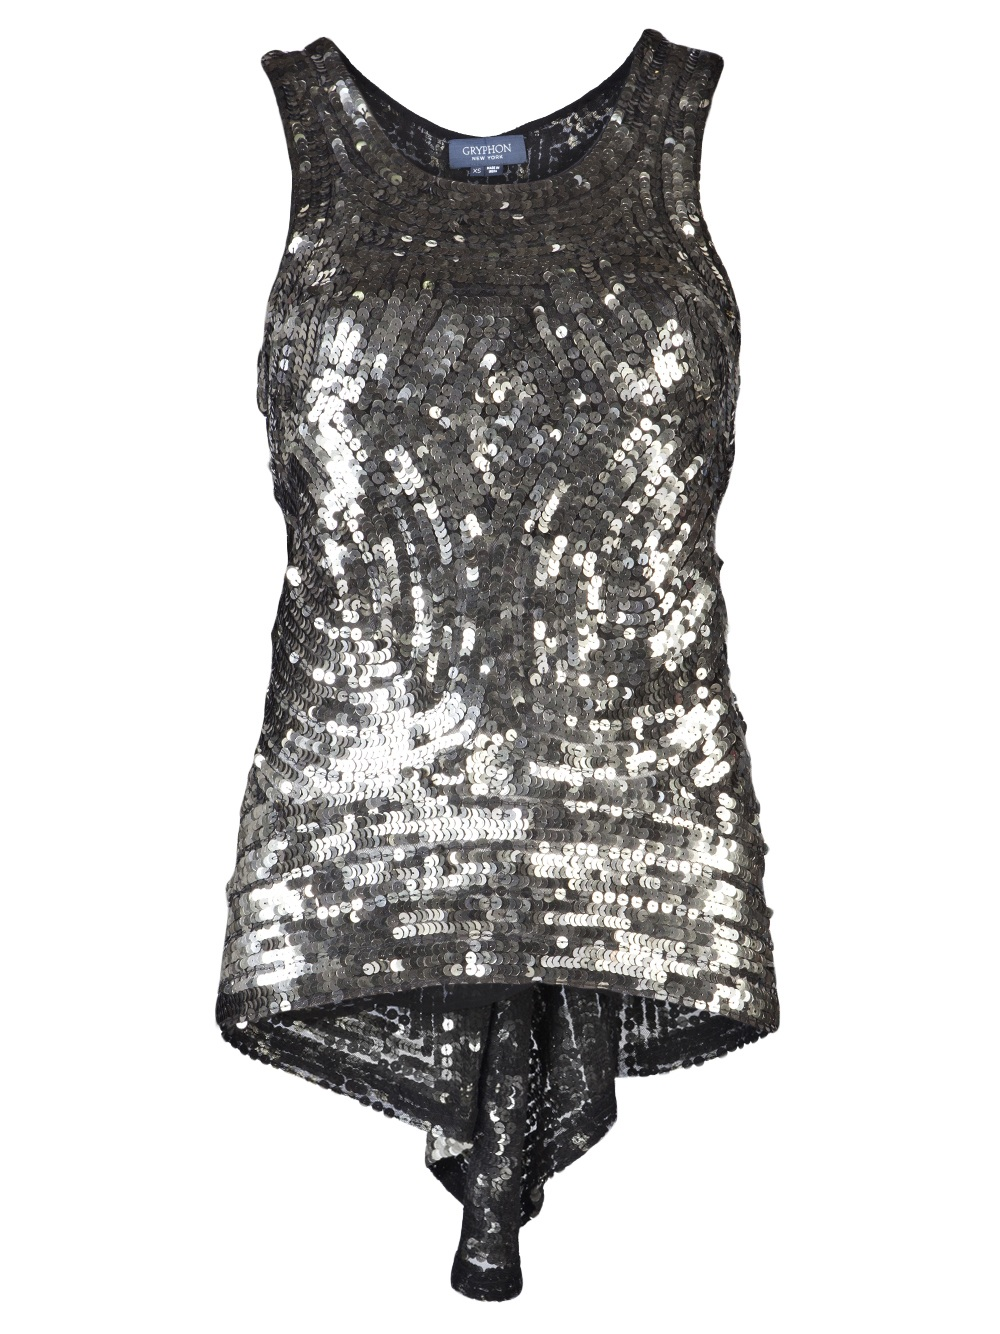 34f9f51aa1058 Gryphon Sequin Party Shirt in Metallic - Lyst